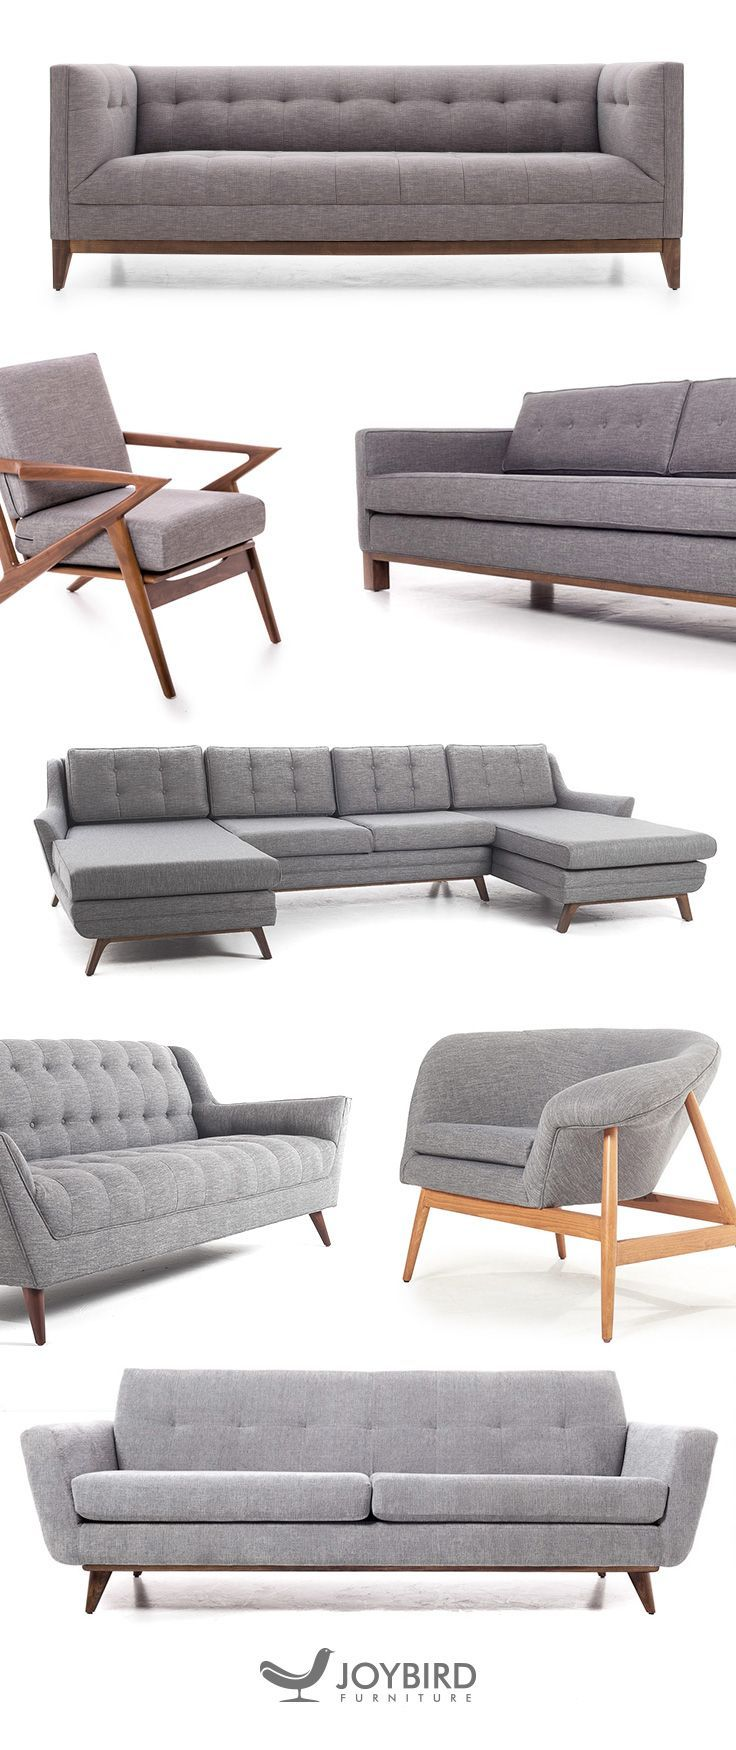 Get premium quality furniture made just for you with for Sofa 50er jahre stil